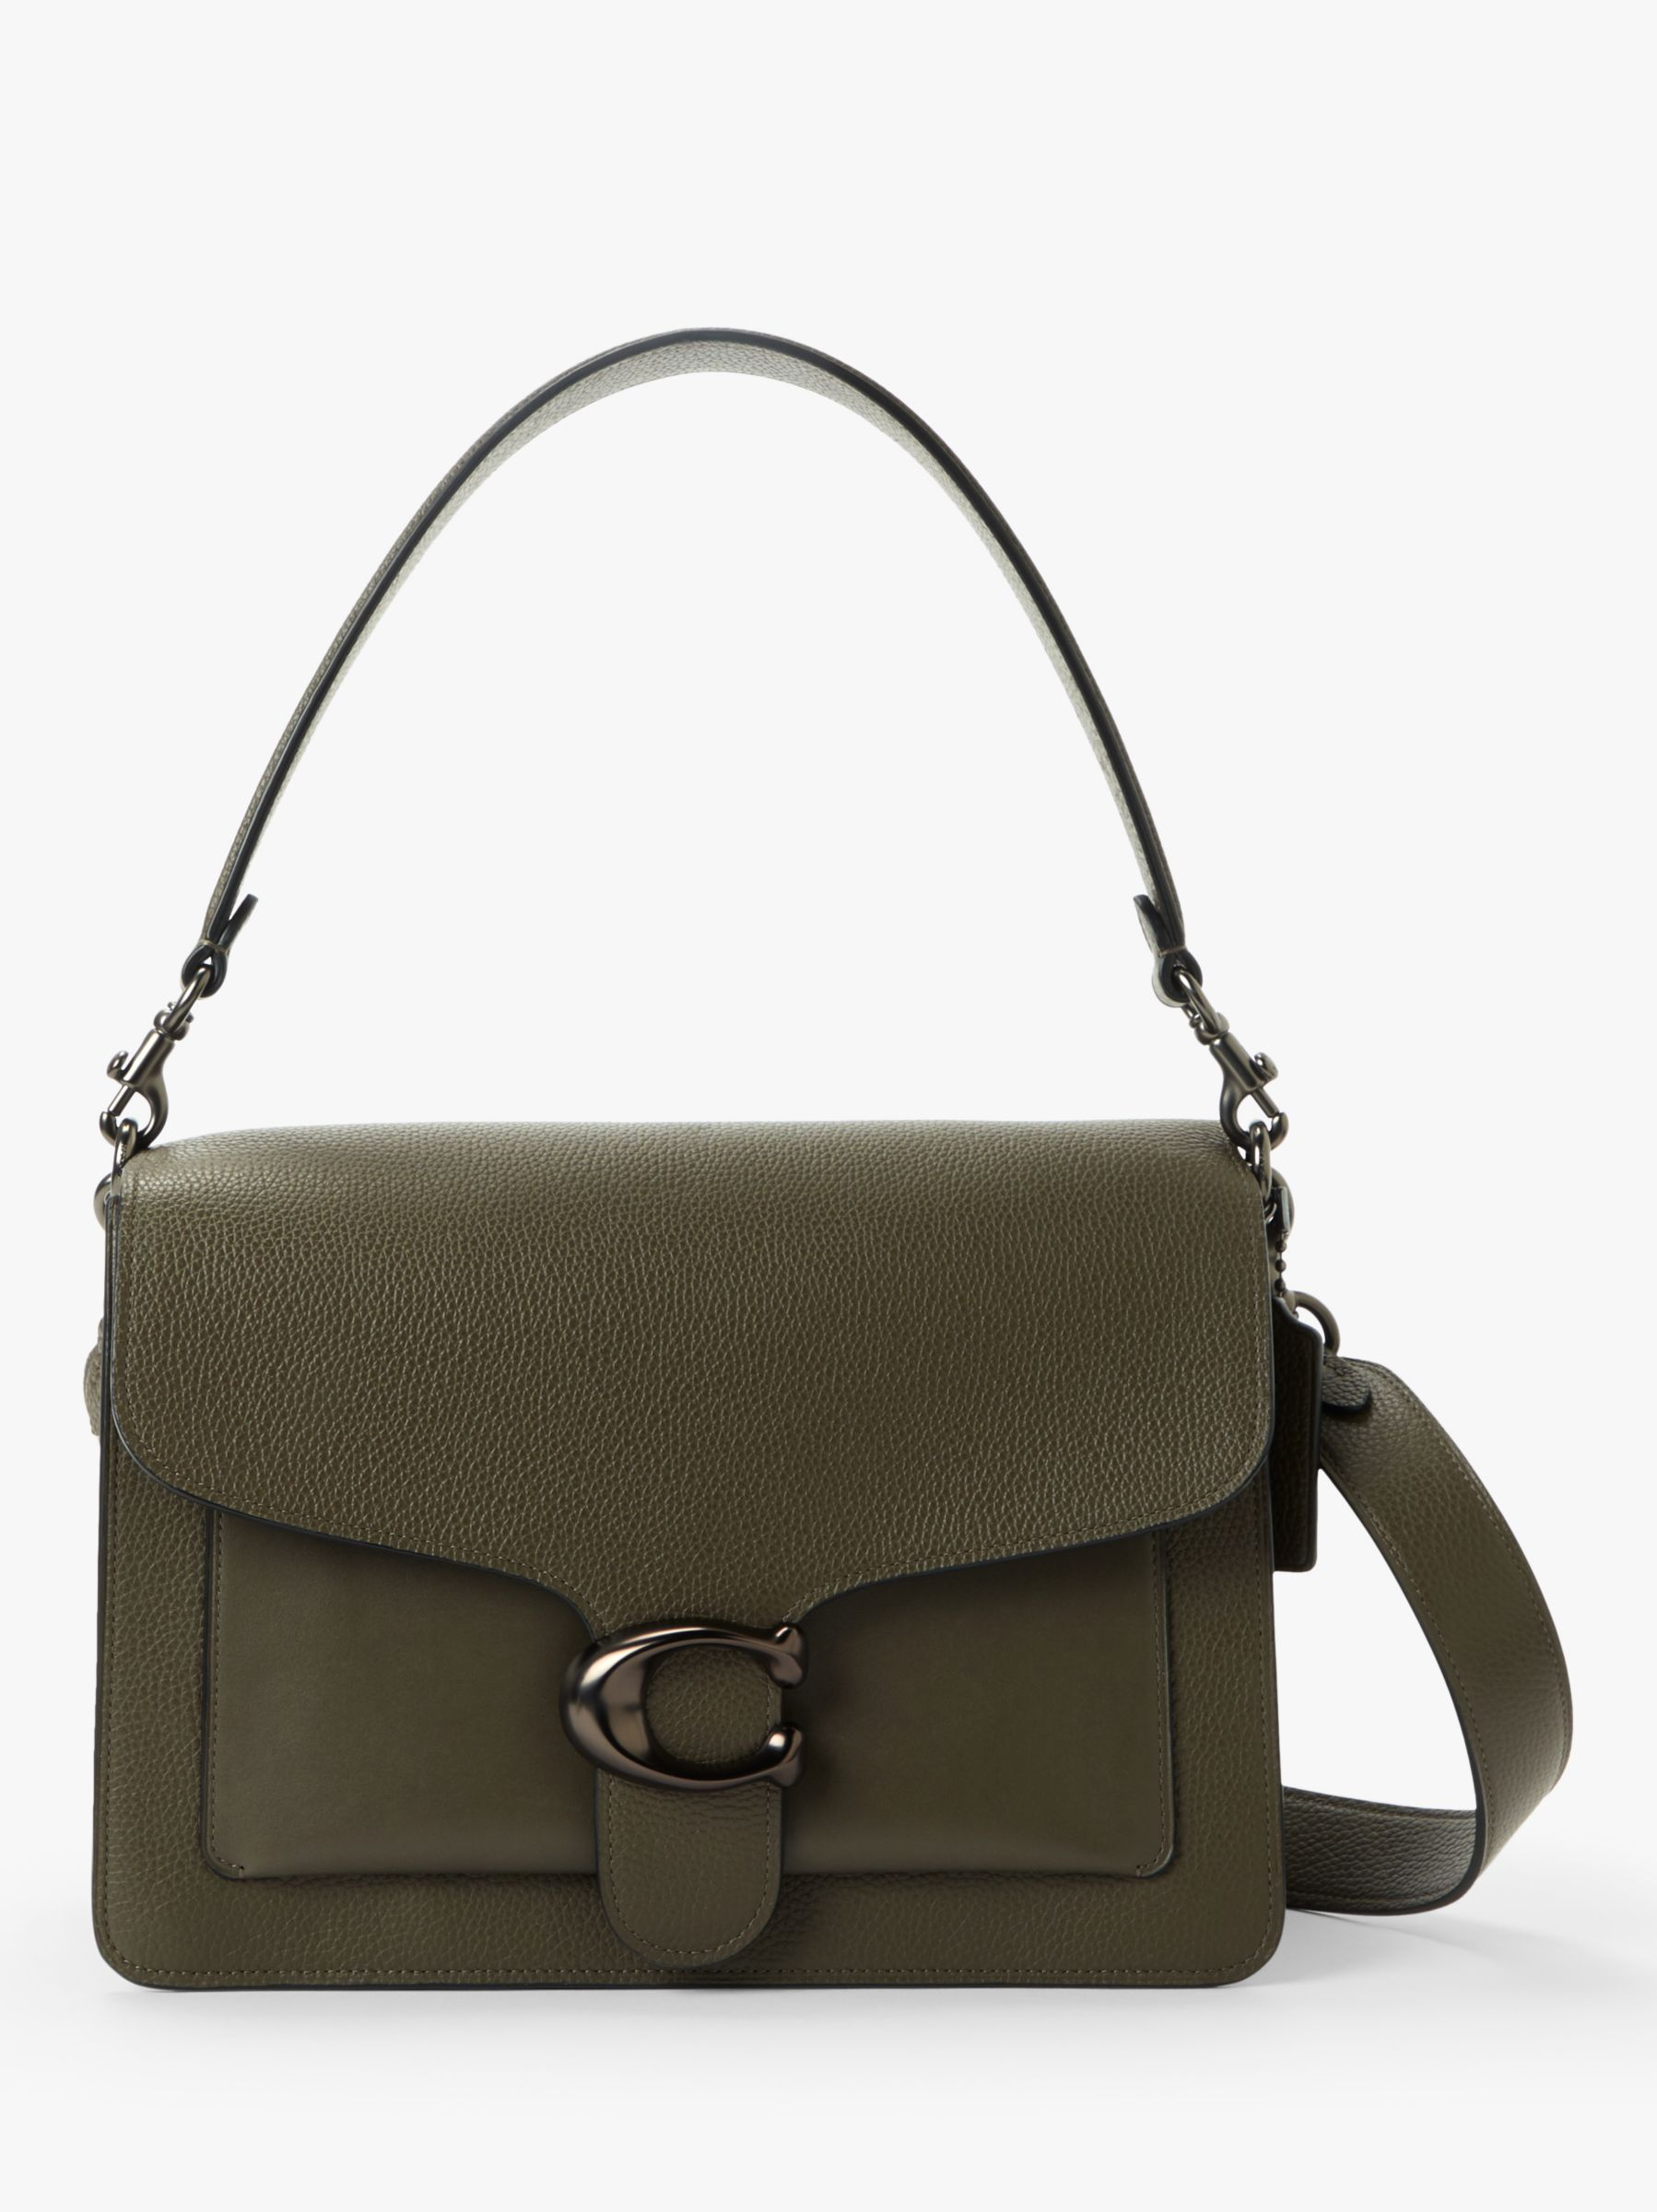 a98e36a15b2038 Coach Tabby Large Leather Shoulder Bag at John Lewis & Partners